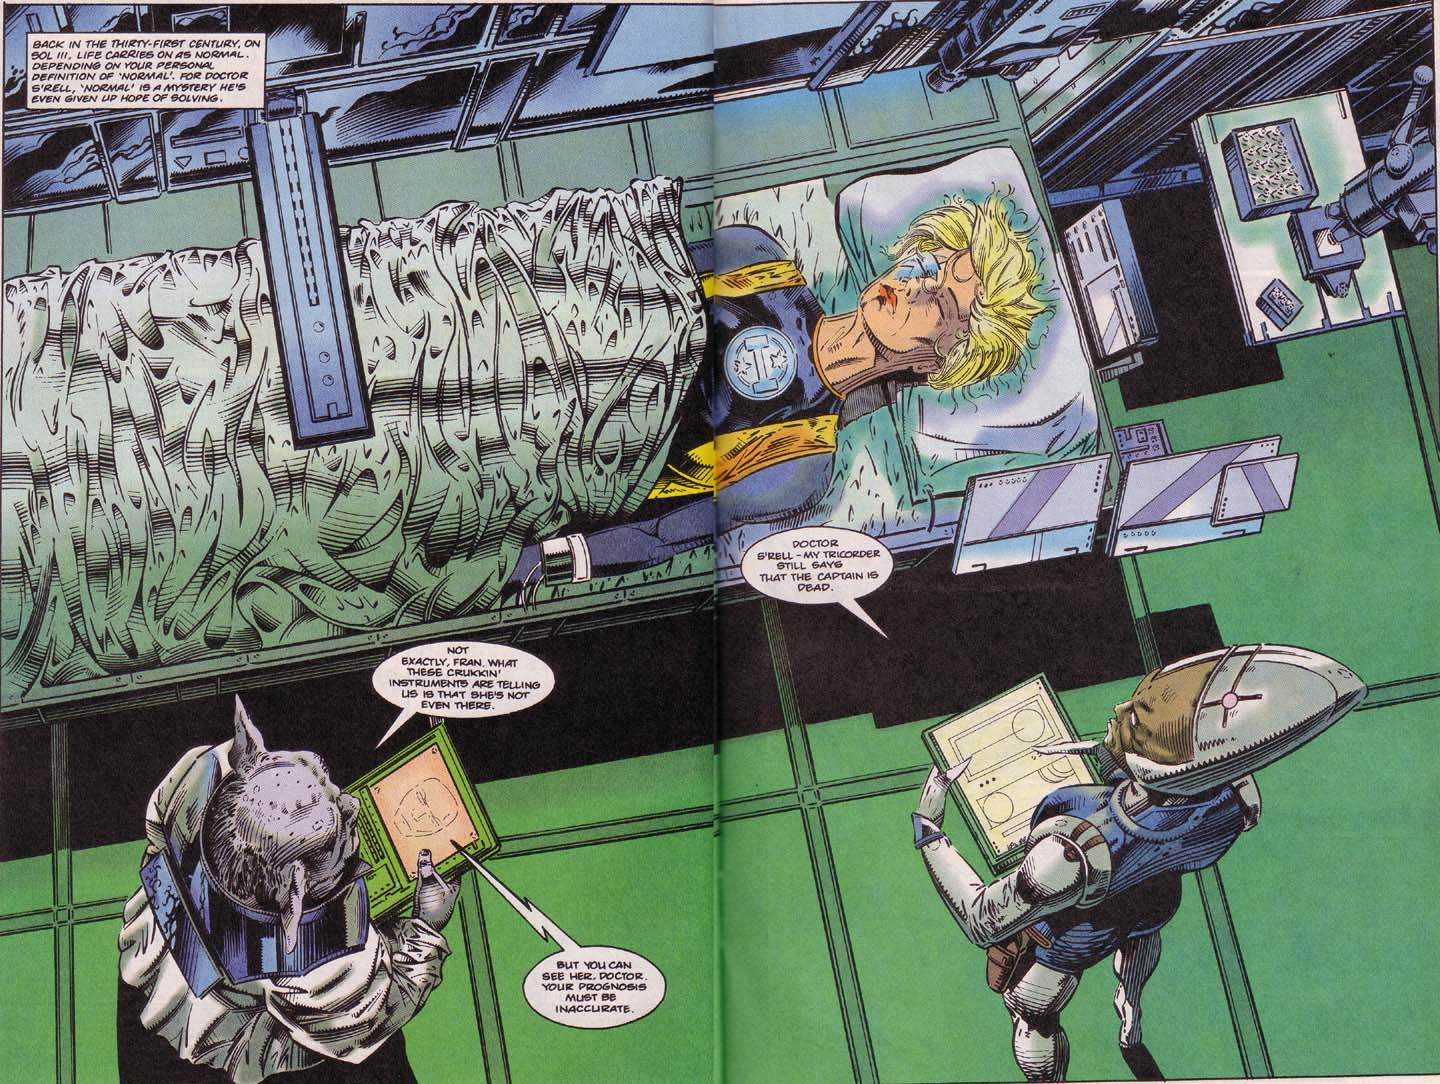 Read online Cyberspace 3000 comic -  Issue #4 - 11